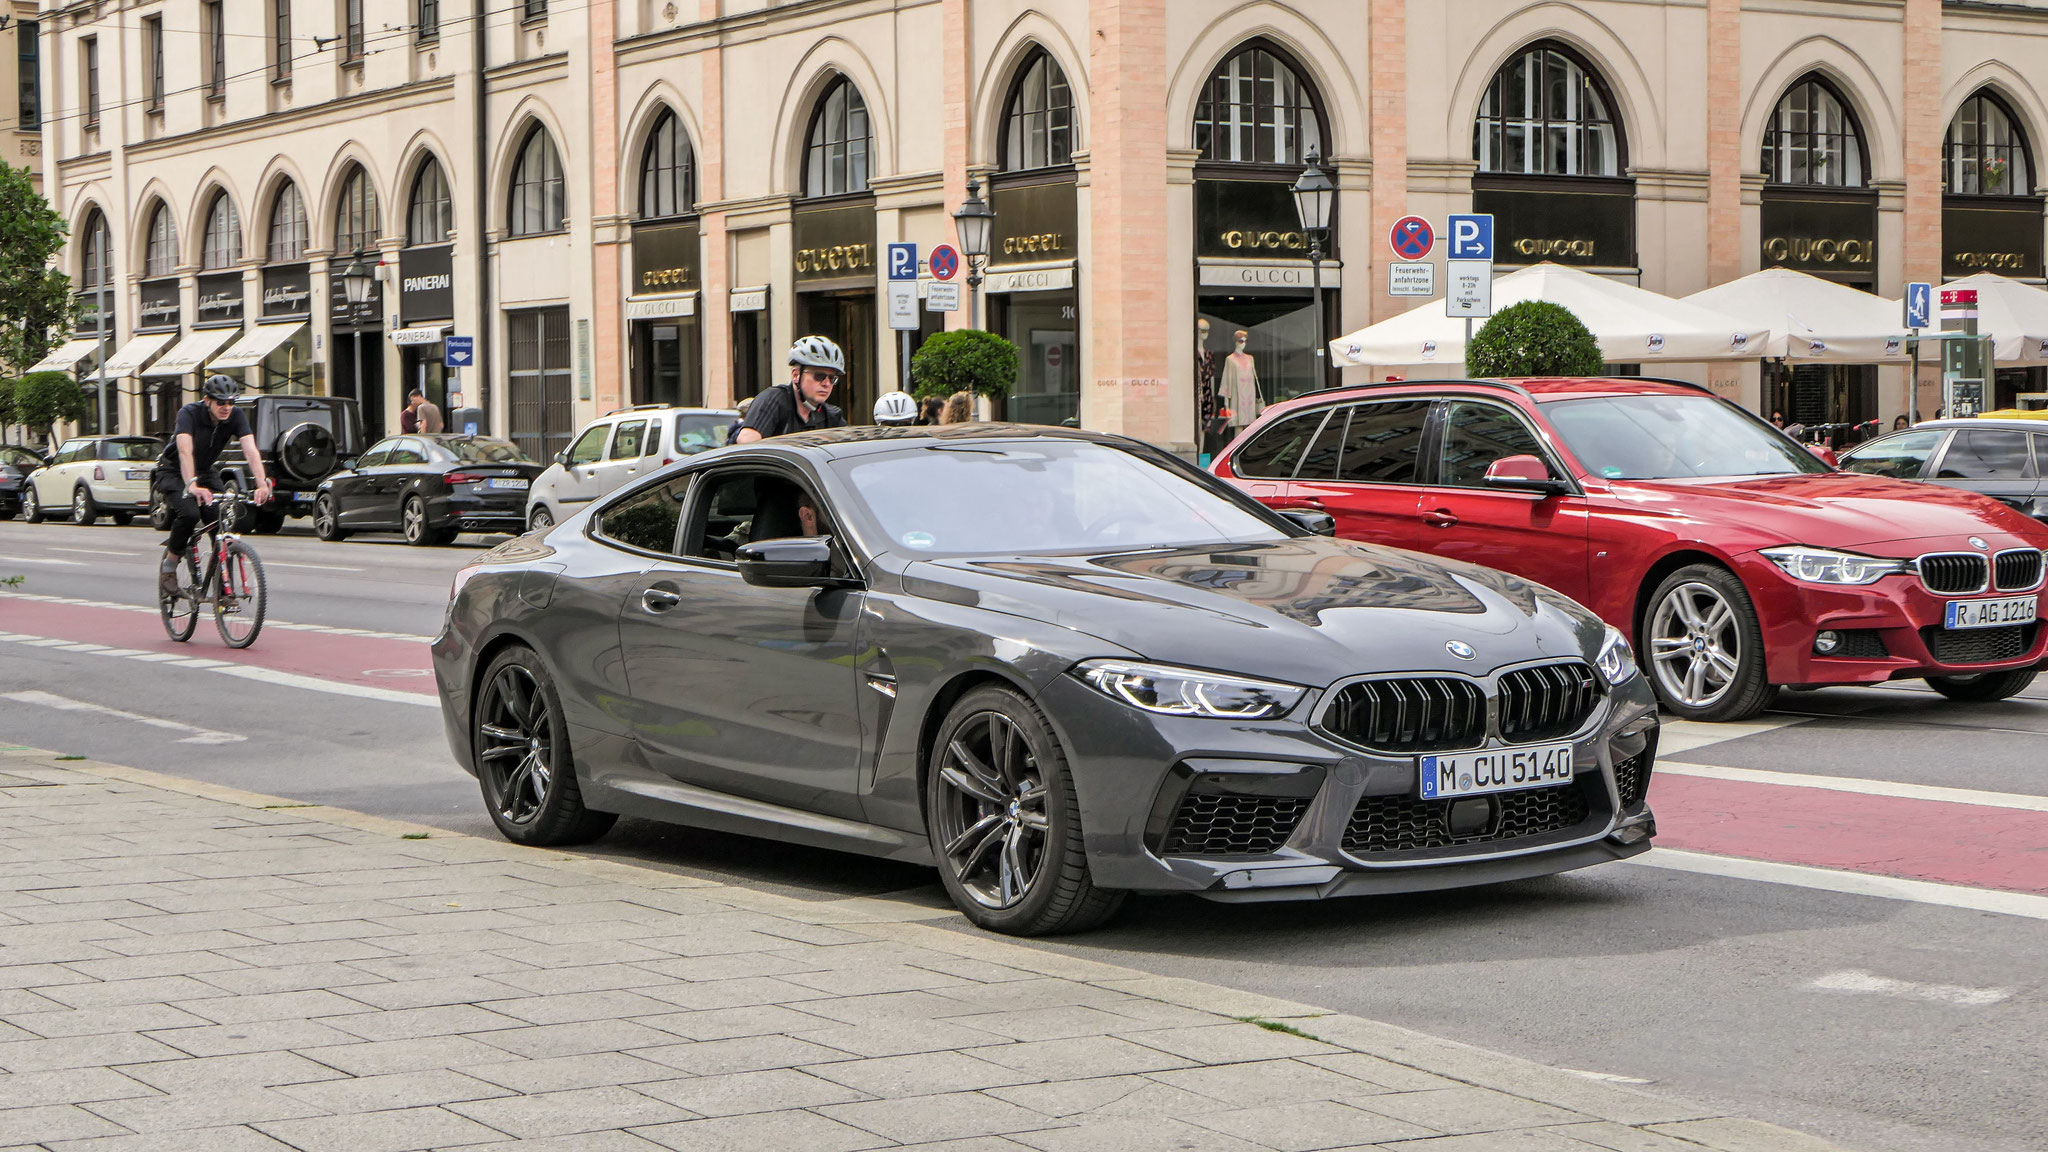 BMW M8 Competition - M-CU-5140